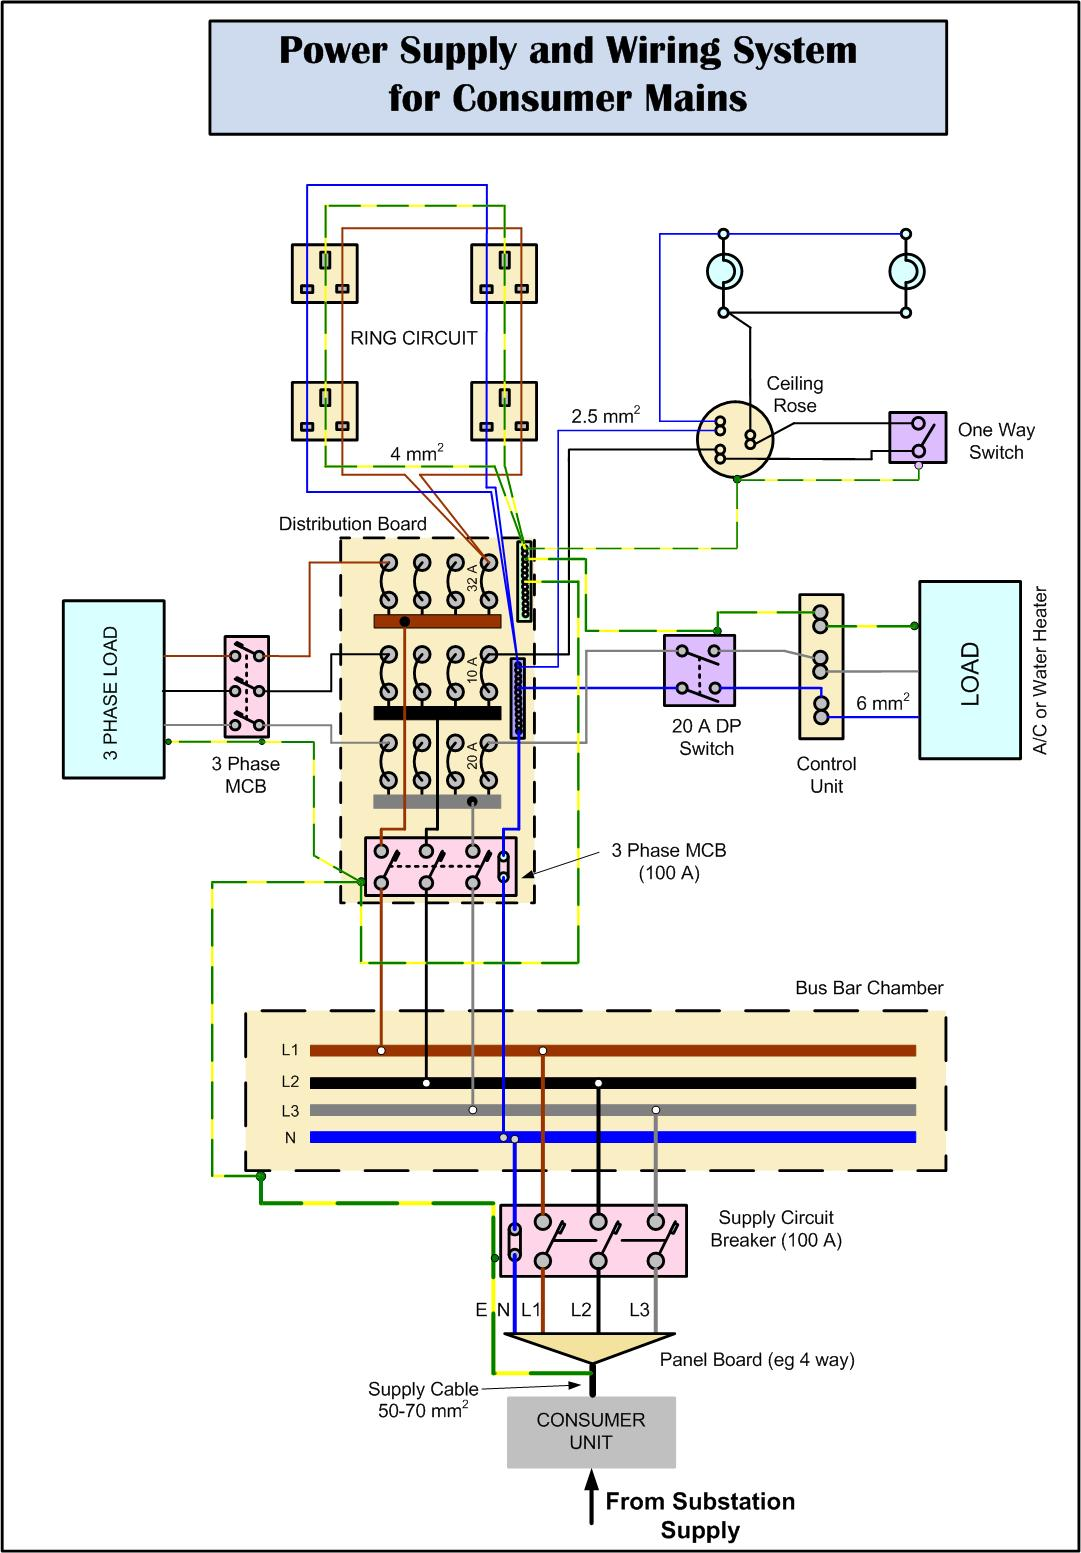 Singer Heater Wire Diagram House Schematic Diagrams Wiring Three Phase Electrical U2022 Water Thermostat